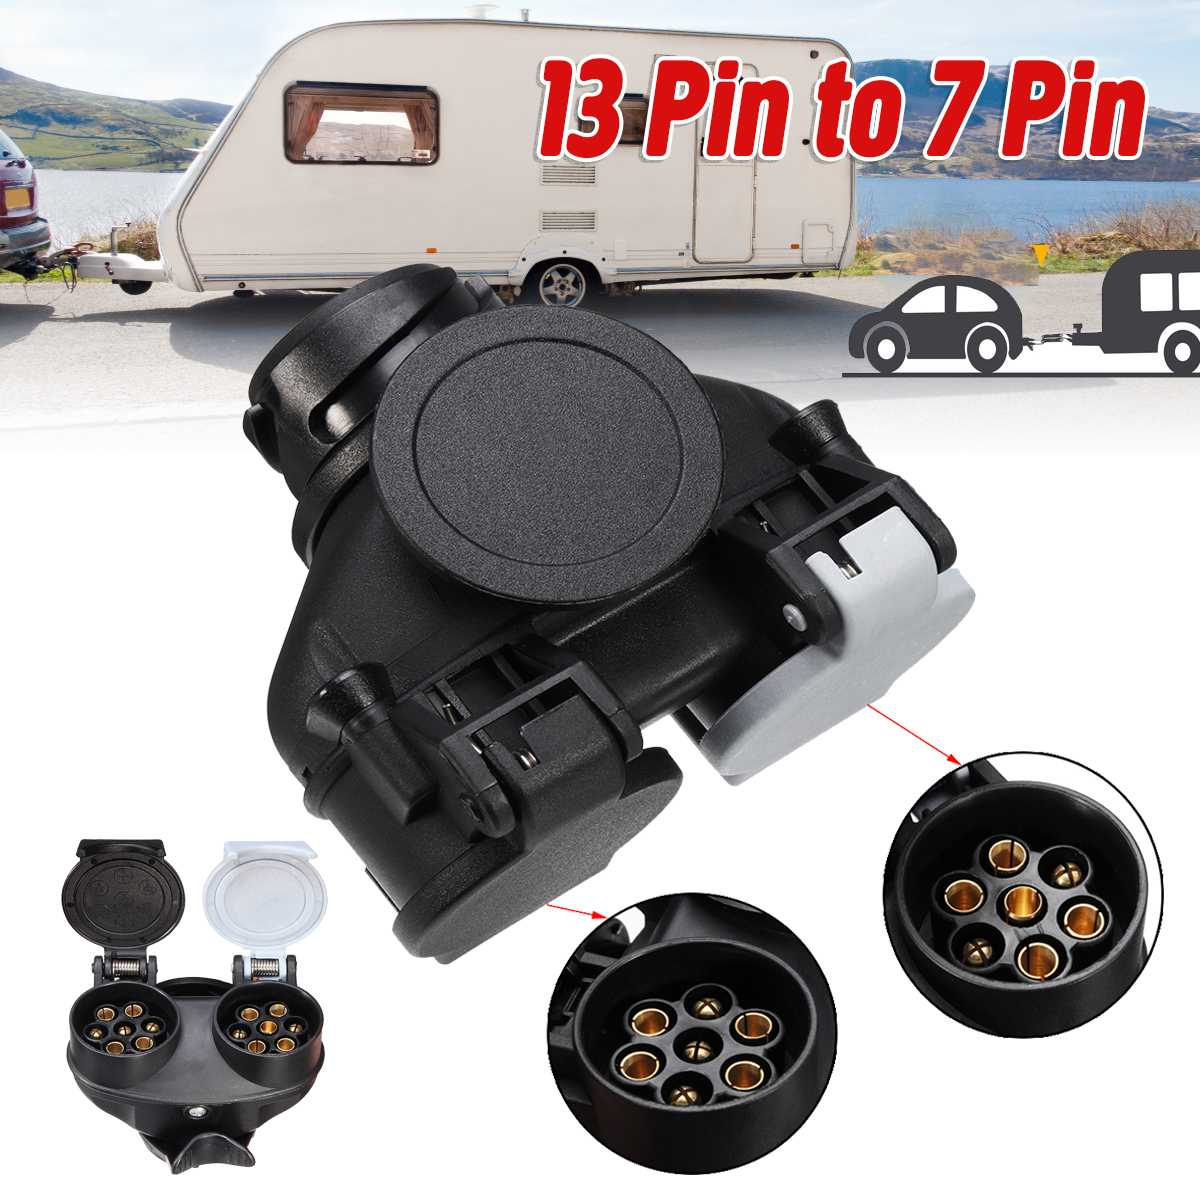 13 Pin To 7 Pin  Double-head Connector RV Trailer Power Connector Plug Socket Connector Waterproof Conversion Adapter